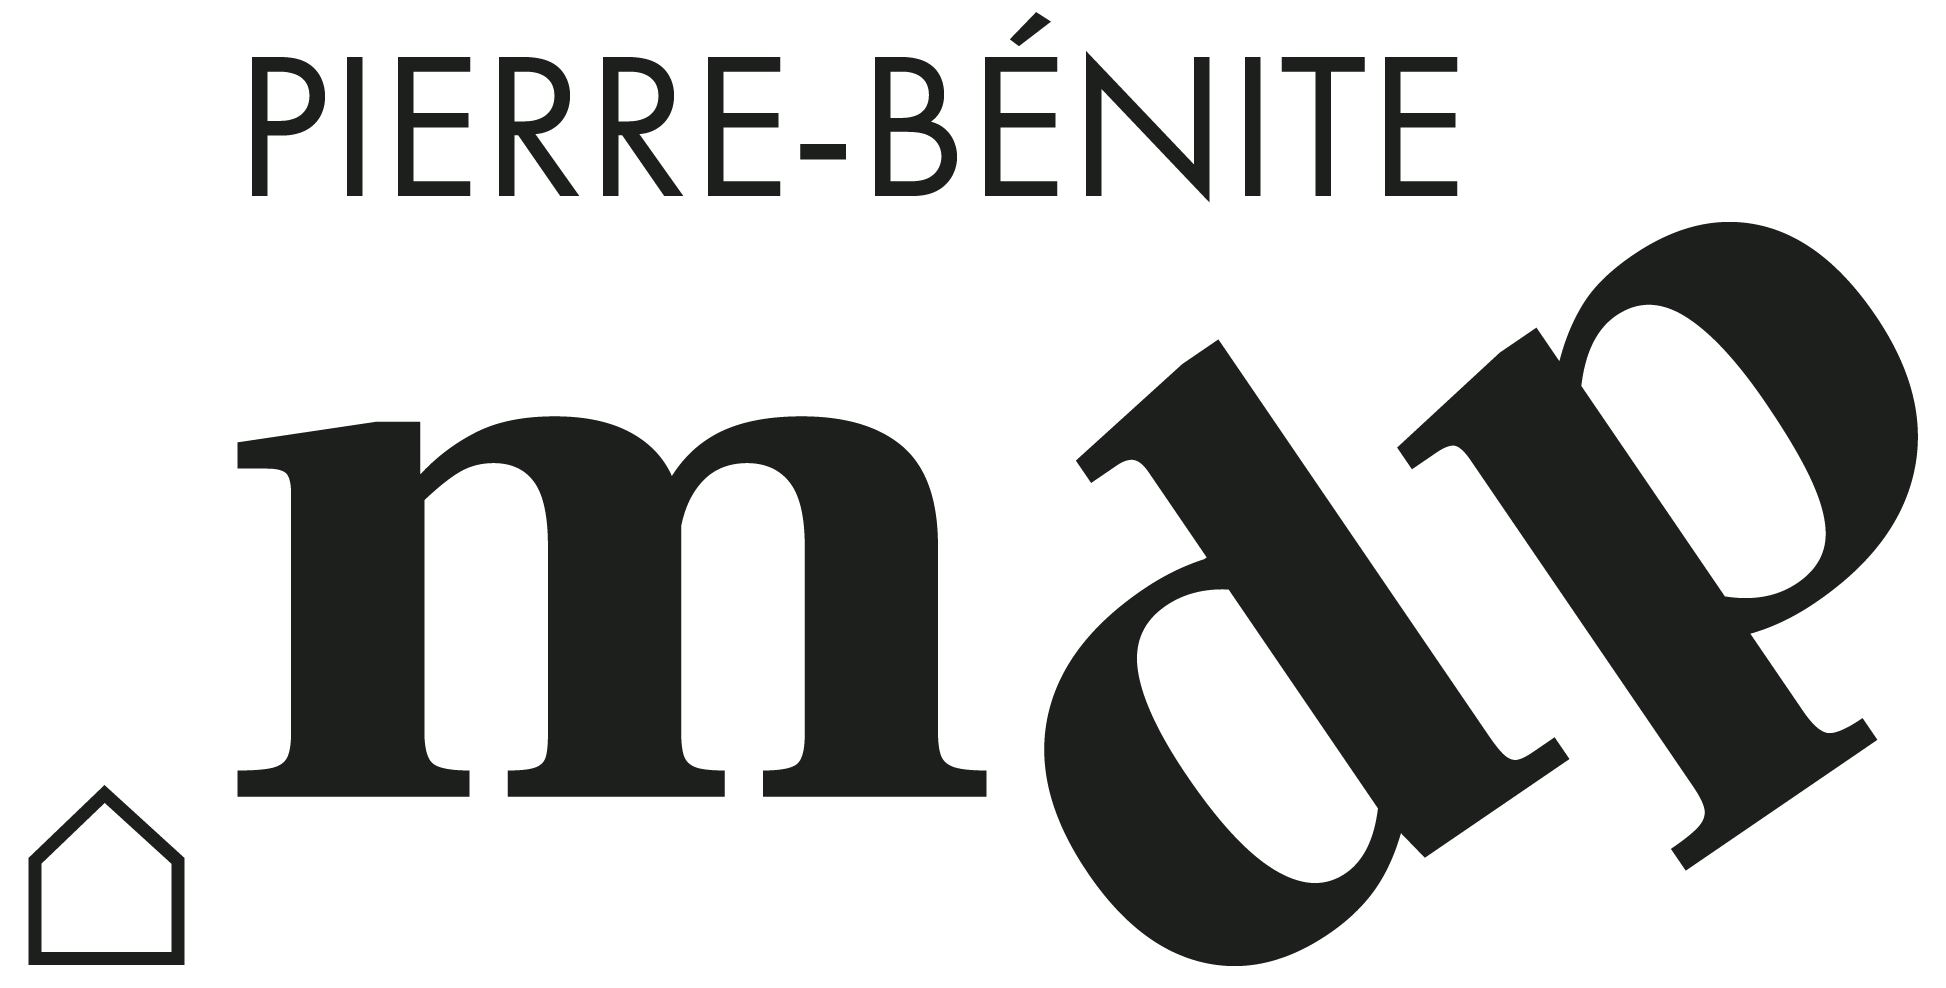 PIERREBENITE-MDP